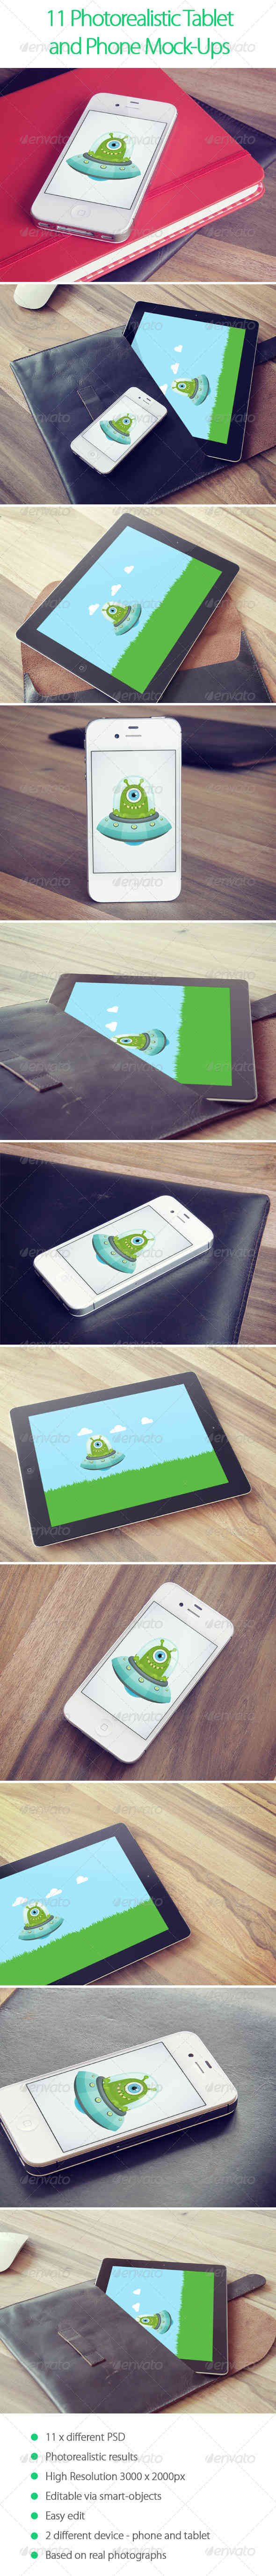 11 Photorealistic Tablet and Phone Mock-Ups